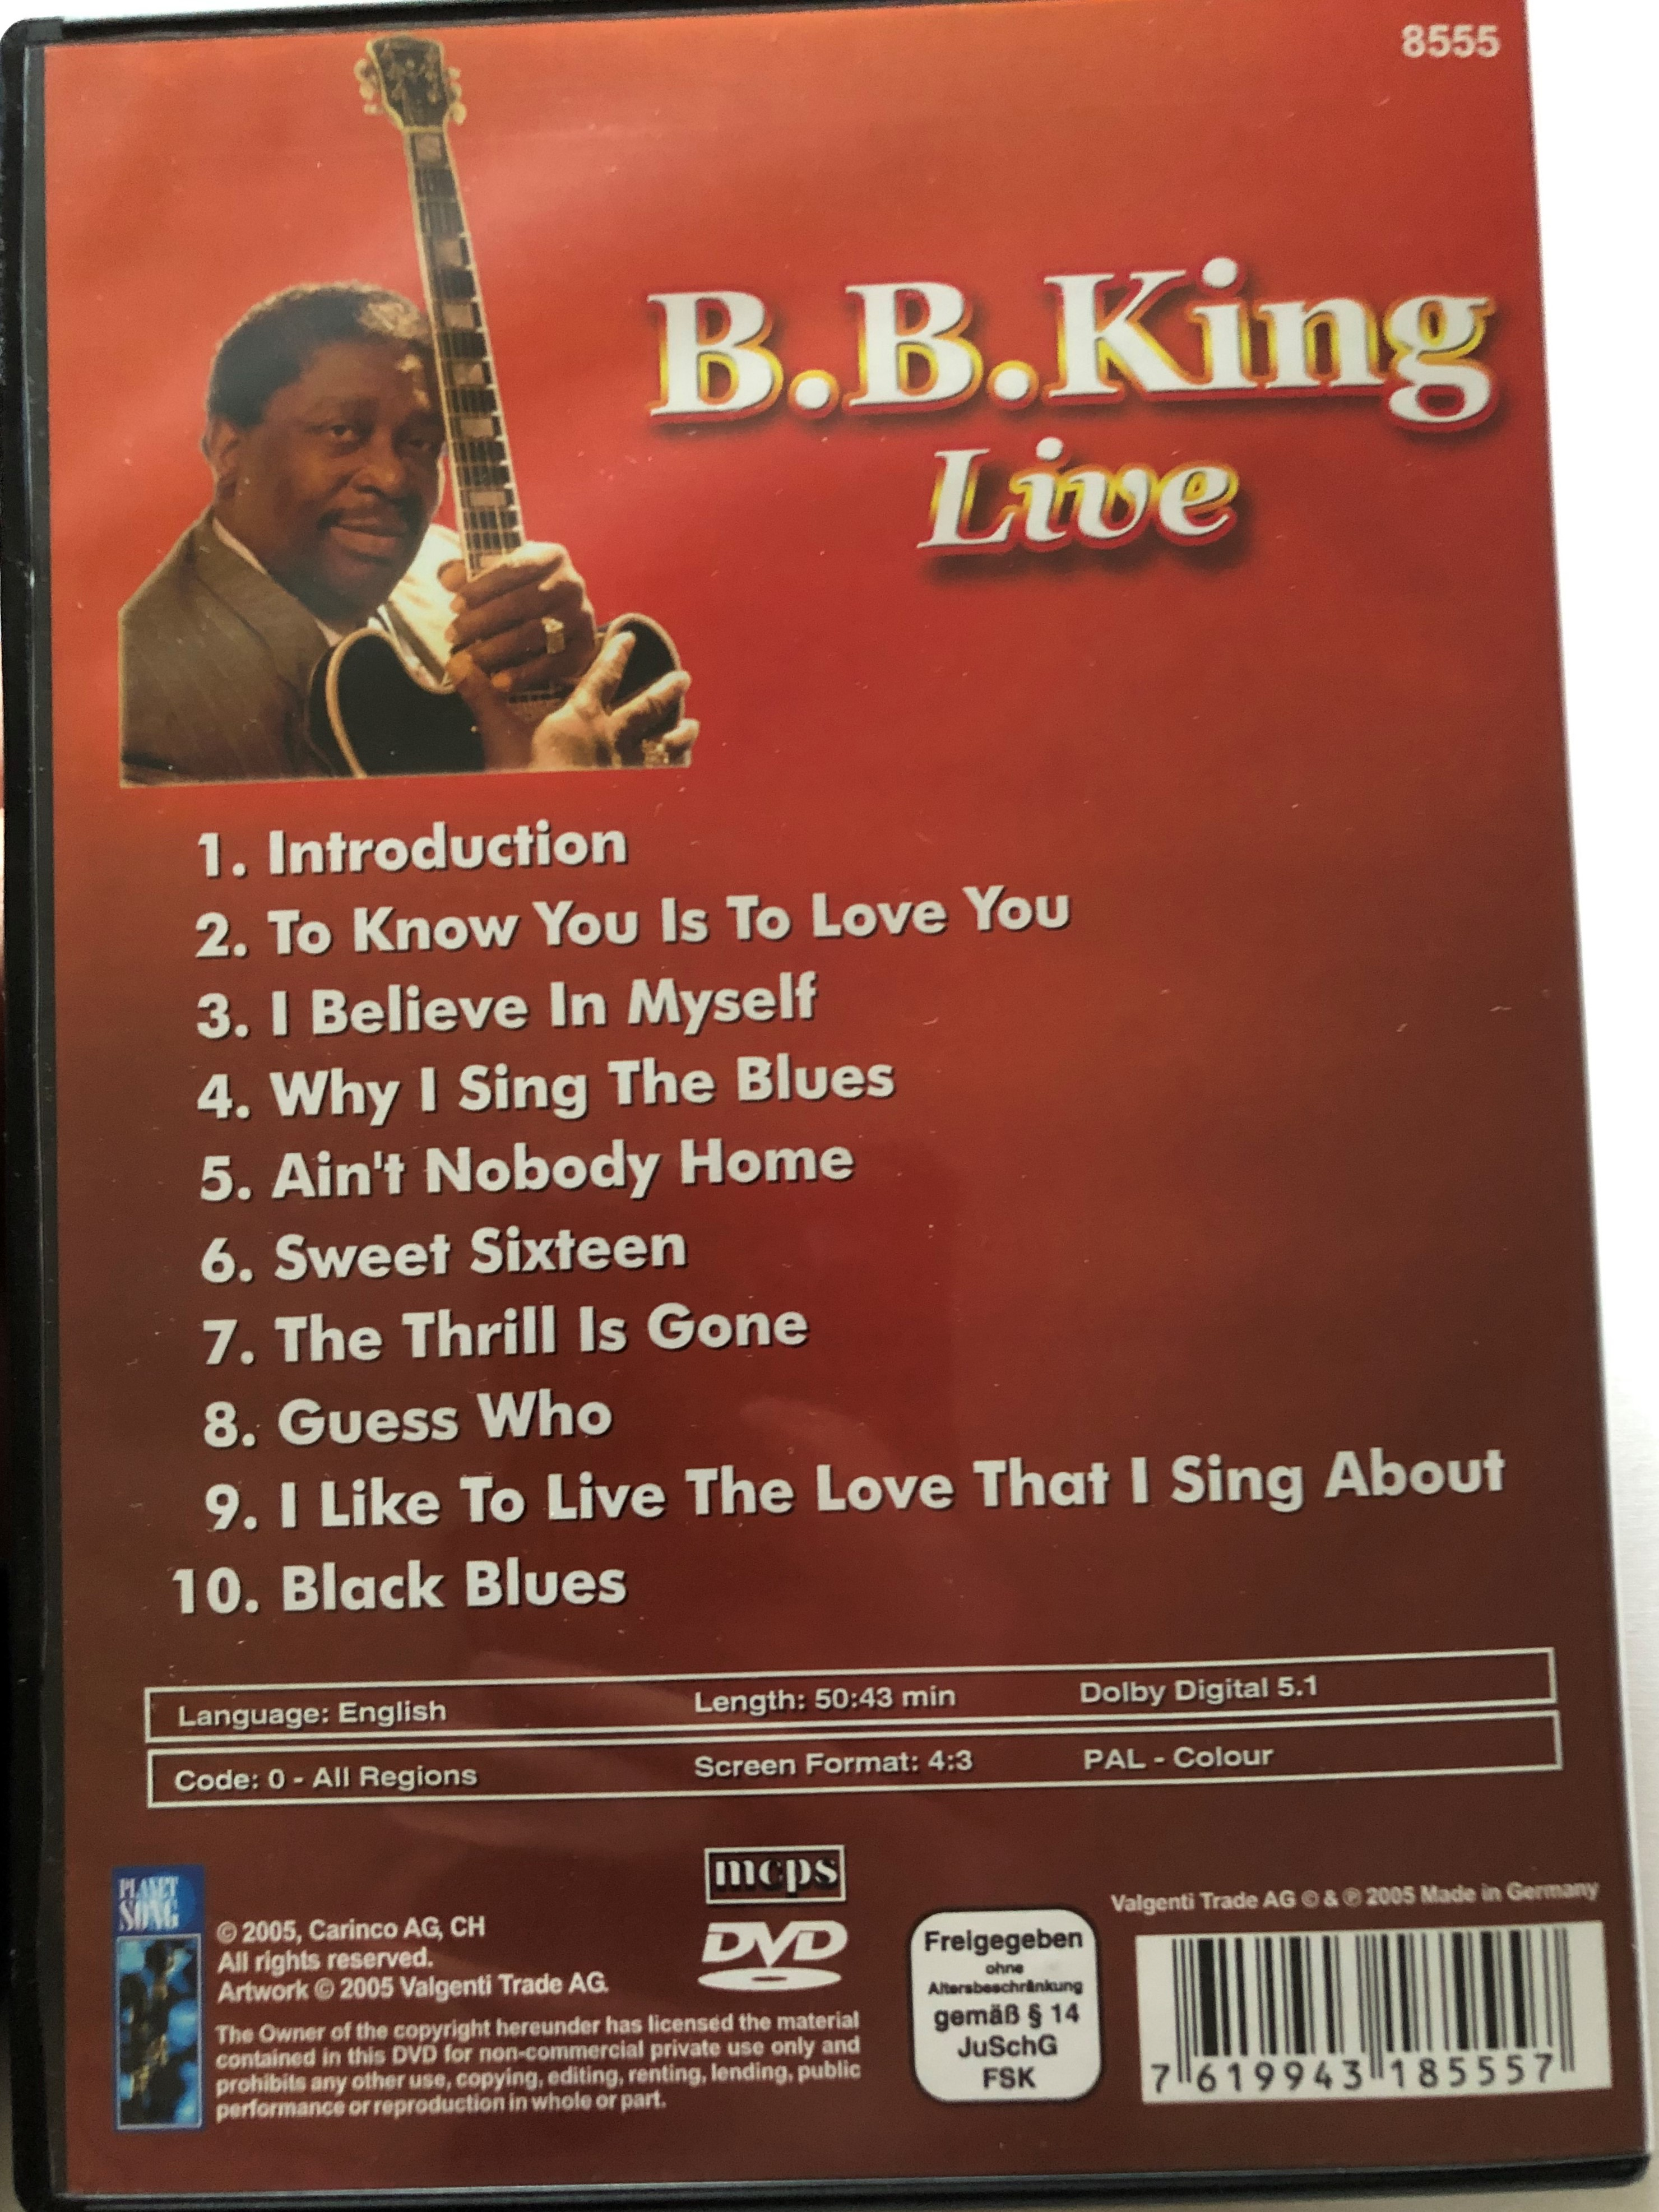 b.b-king-live-dvd-2005-to-know-you-is-to-love-you-why-i-sing-the-blues-the-thrill-is-gone-guess-who-black-blues-8555-2-.jpg